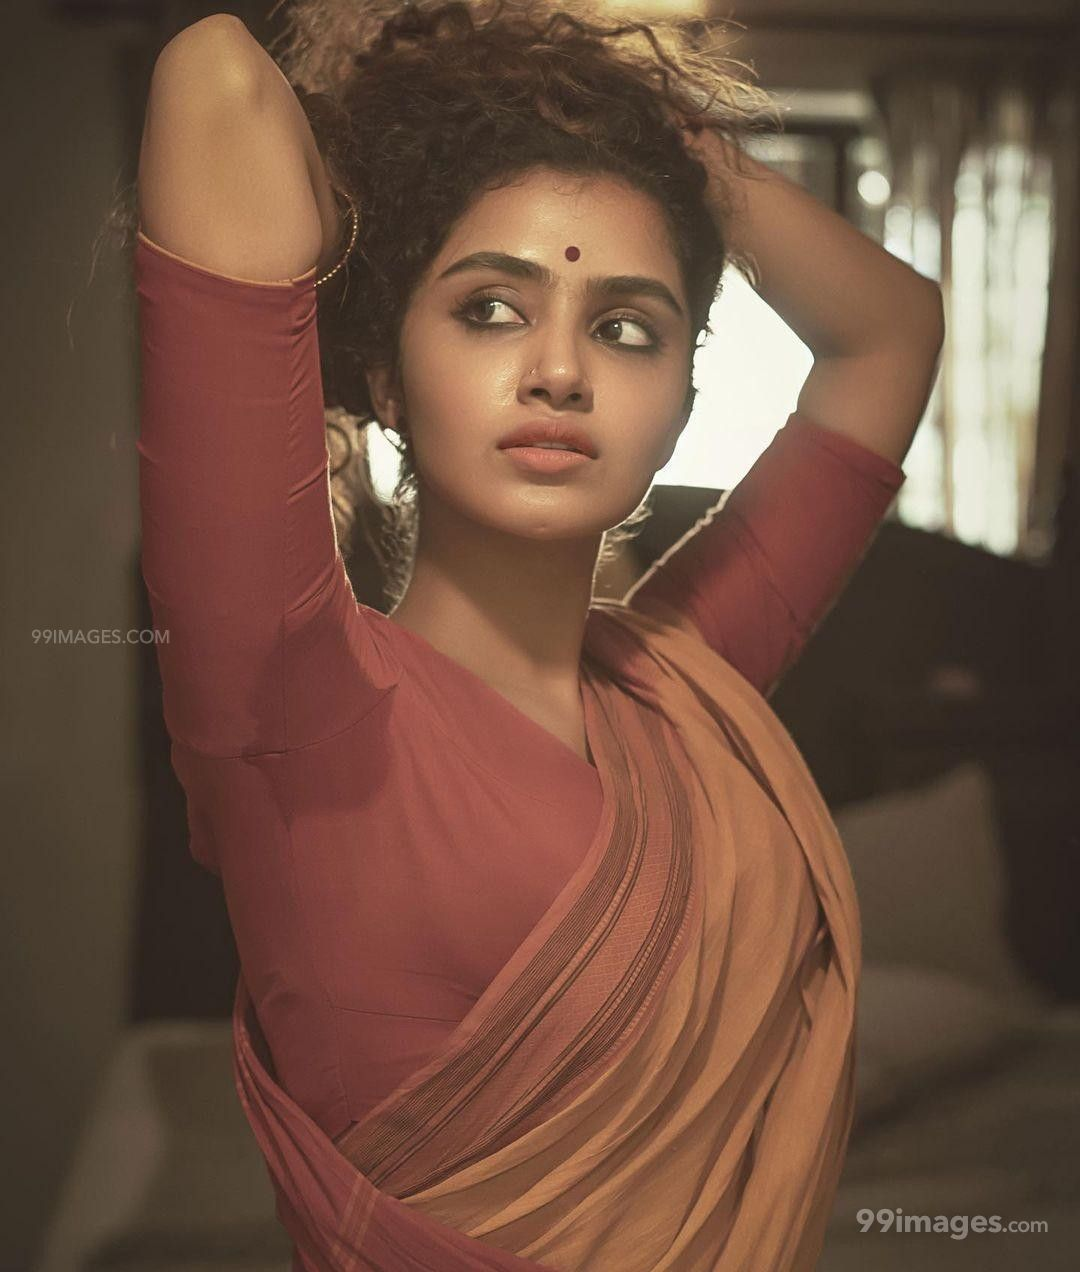 Anupama Parameswaran HD Wallpapers (Desktop Background / Android / iPhone) (1080p, 4k) (312589) - Anupama Parameswaran